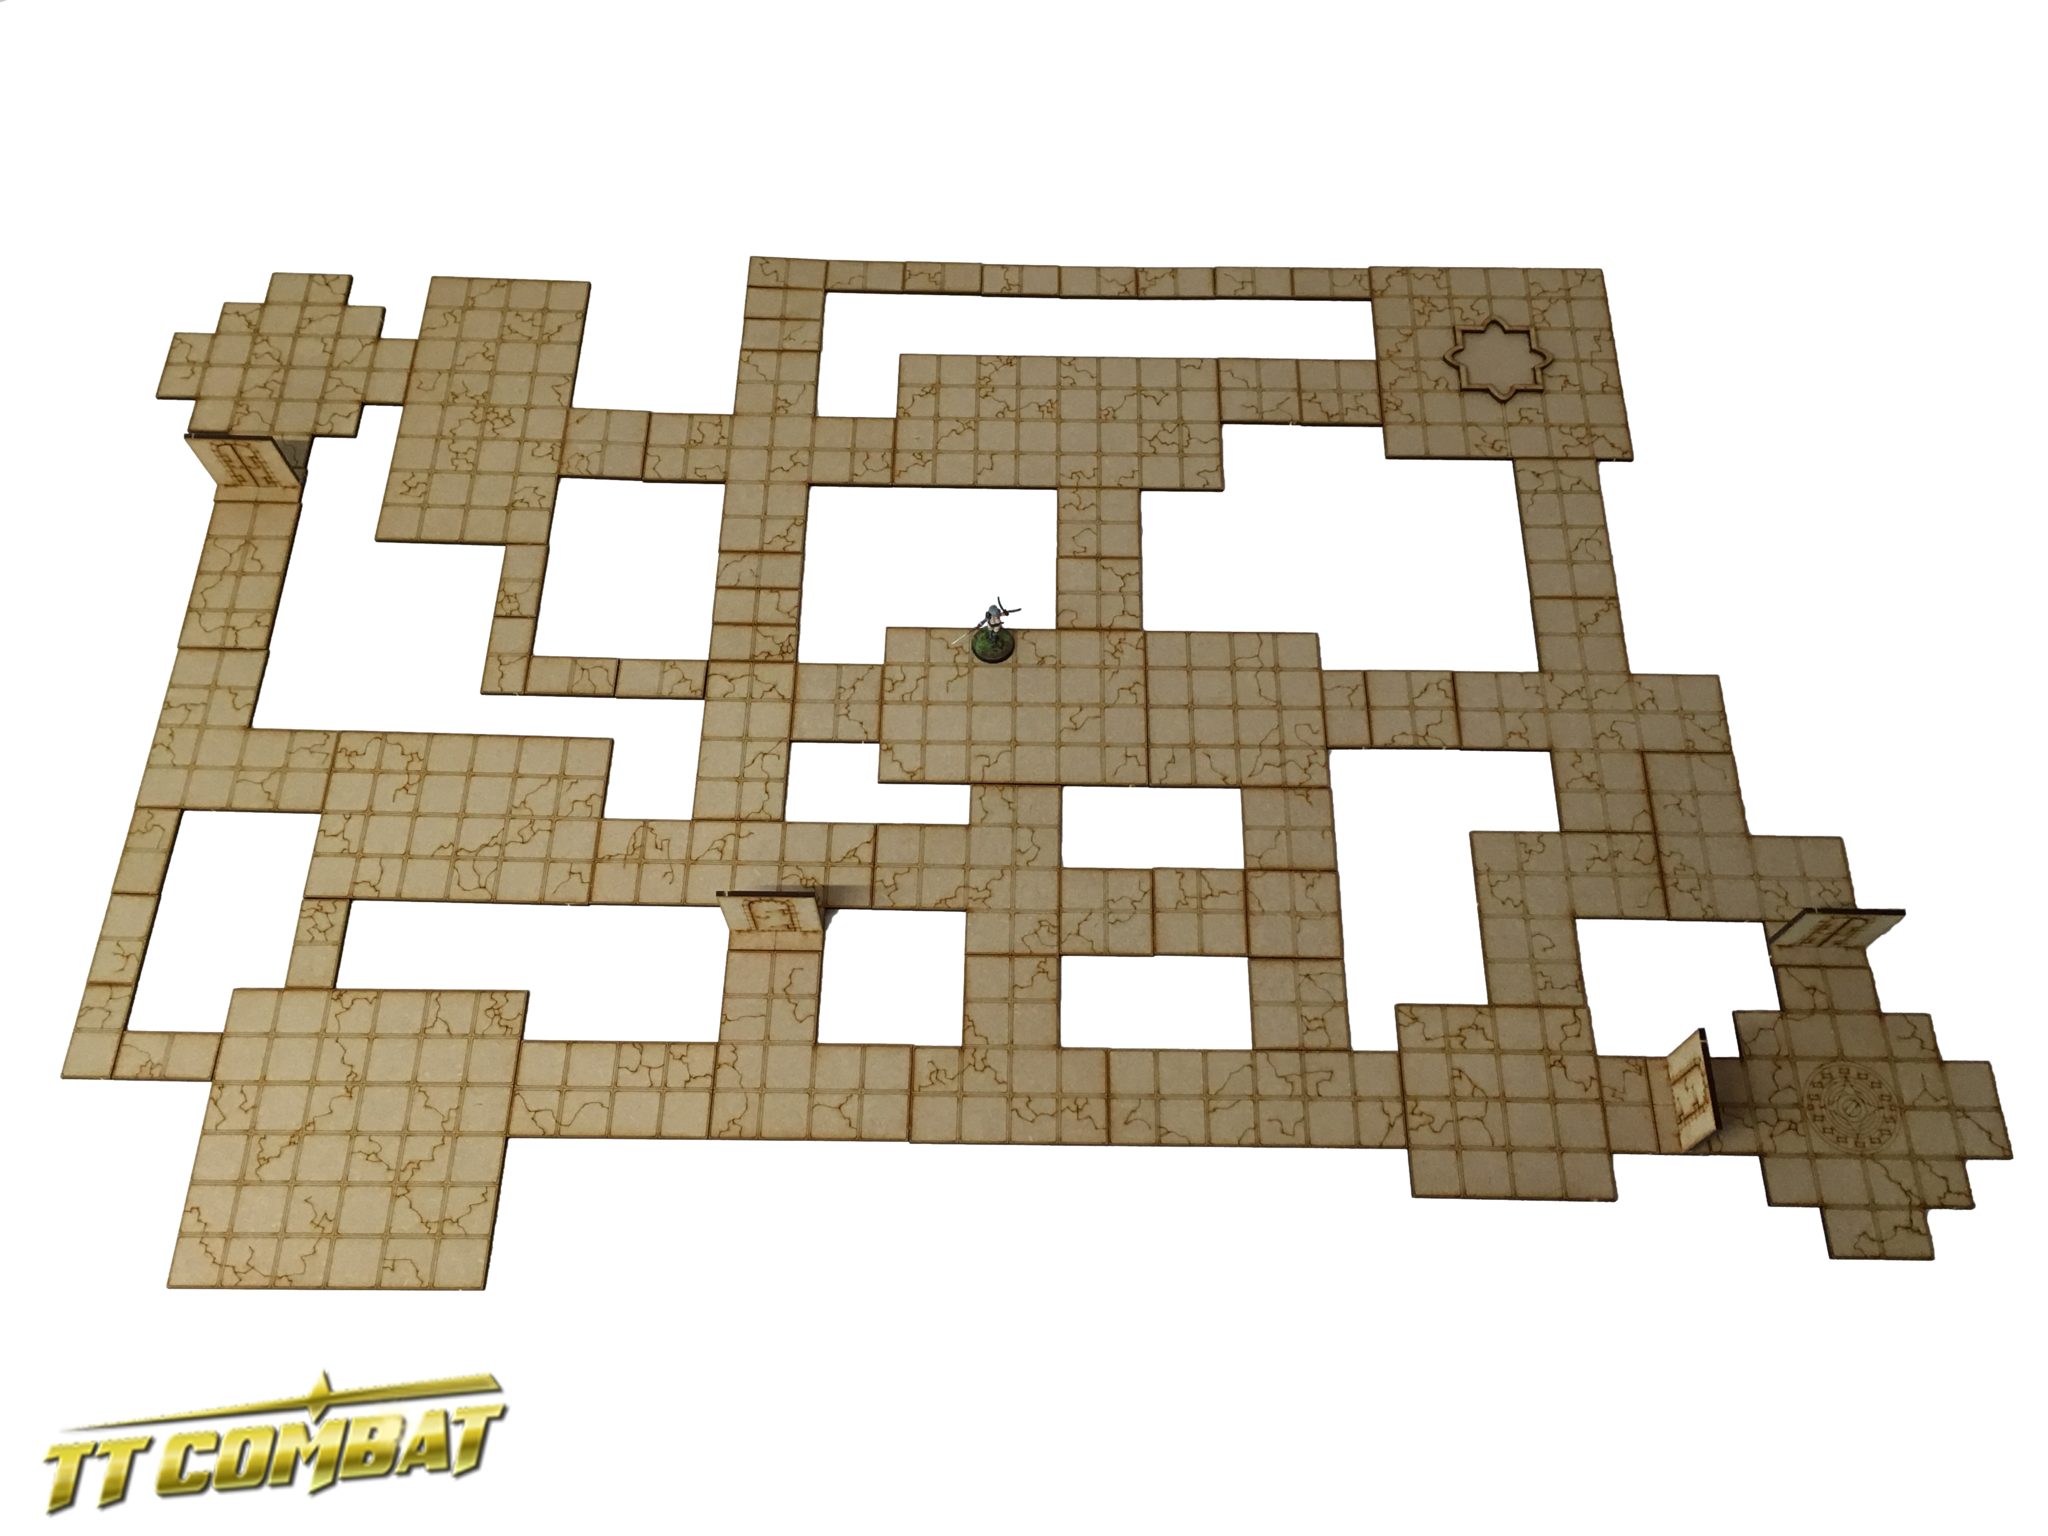 New_Dungeon_2.png?v=1568802736